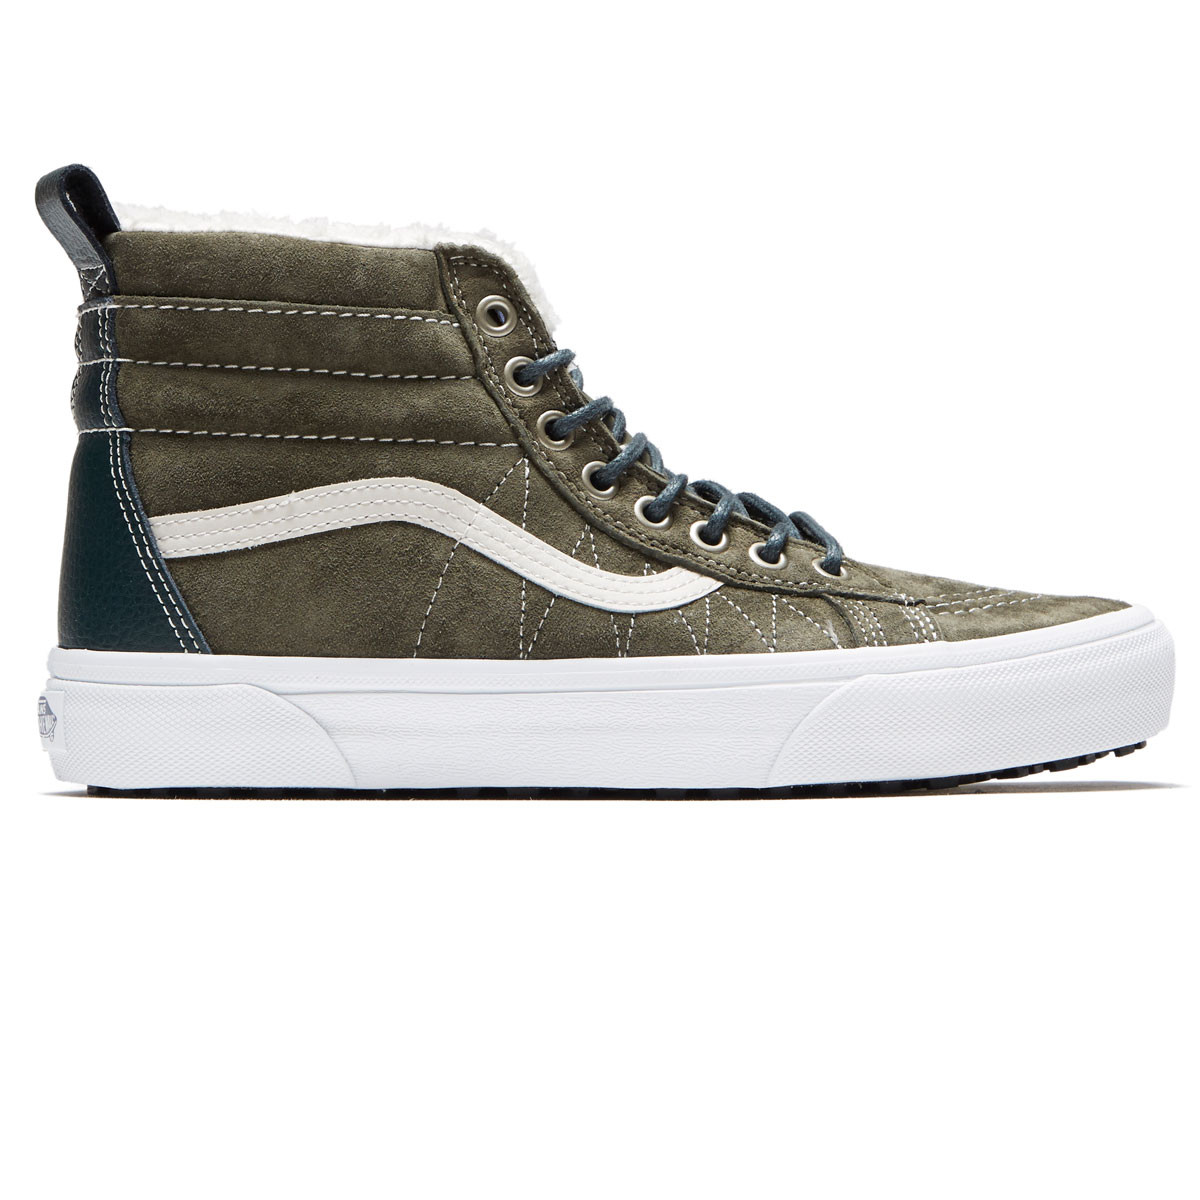 Vans Womens Sk8-Hi MTE Shoes